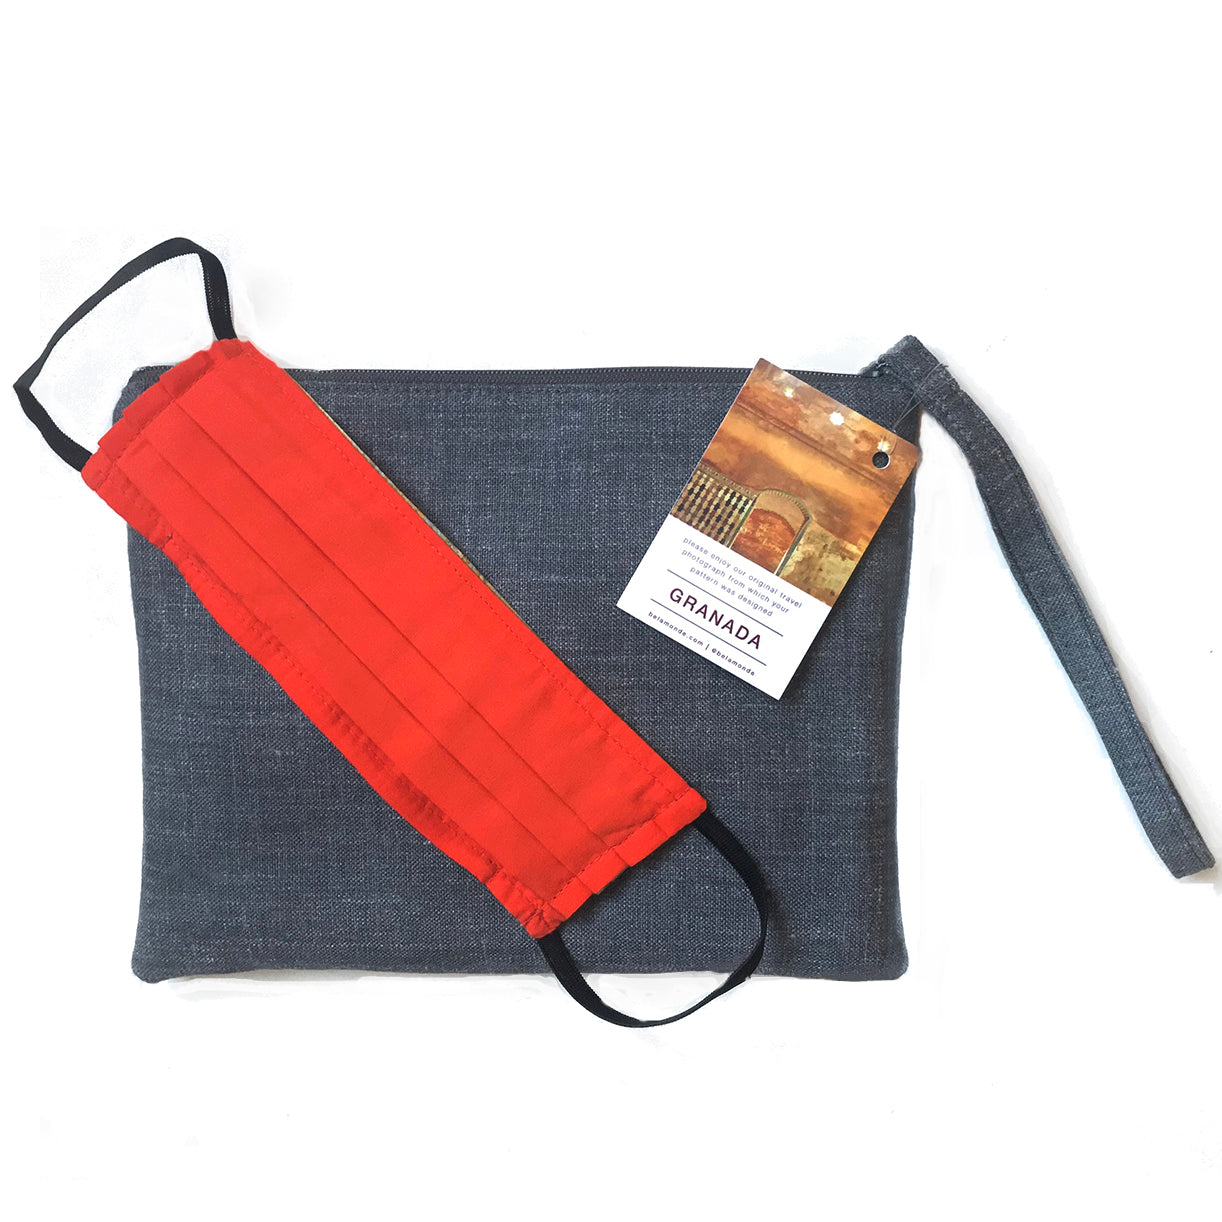 Granada Print Gift Set: Clutch and Face Mask